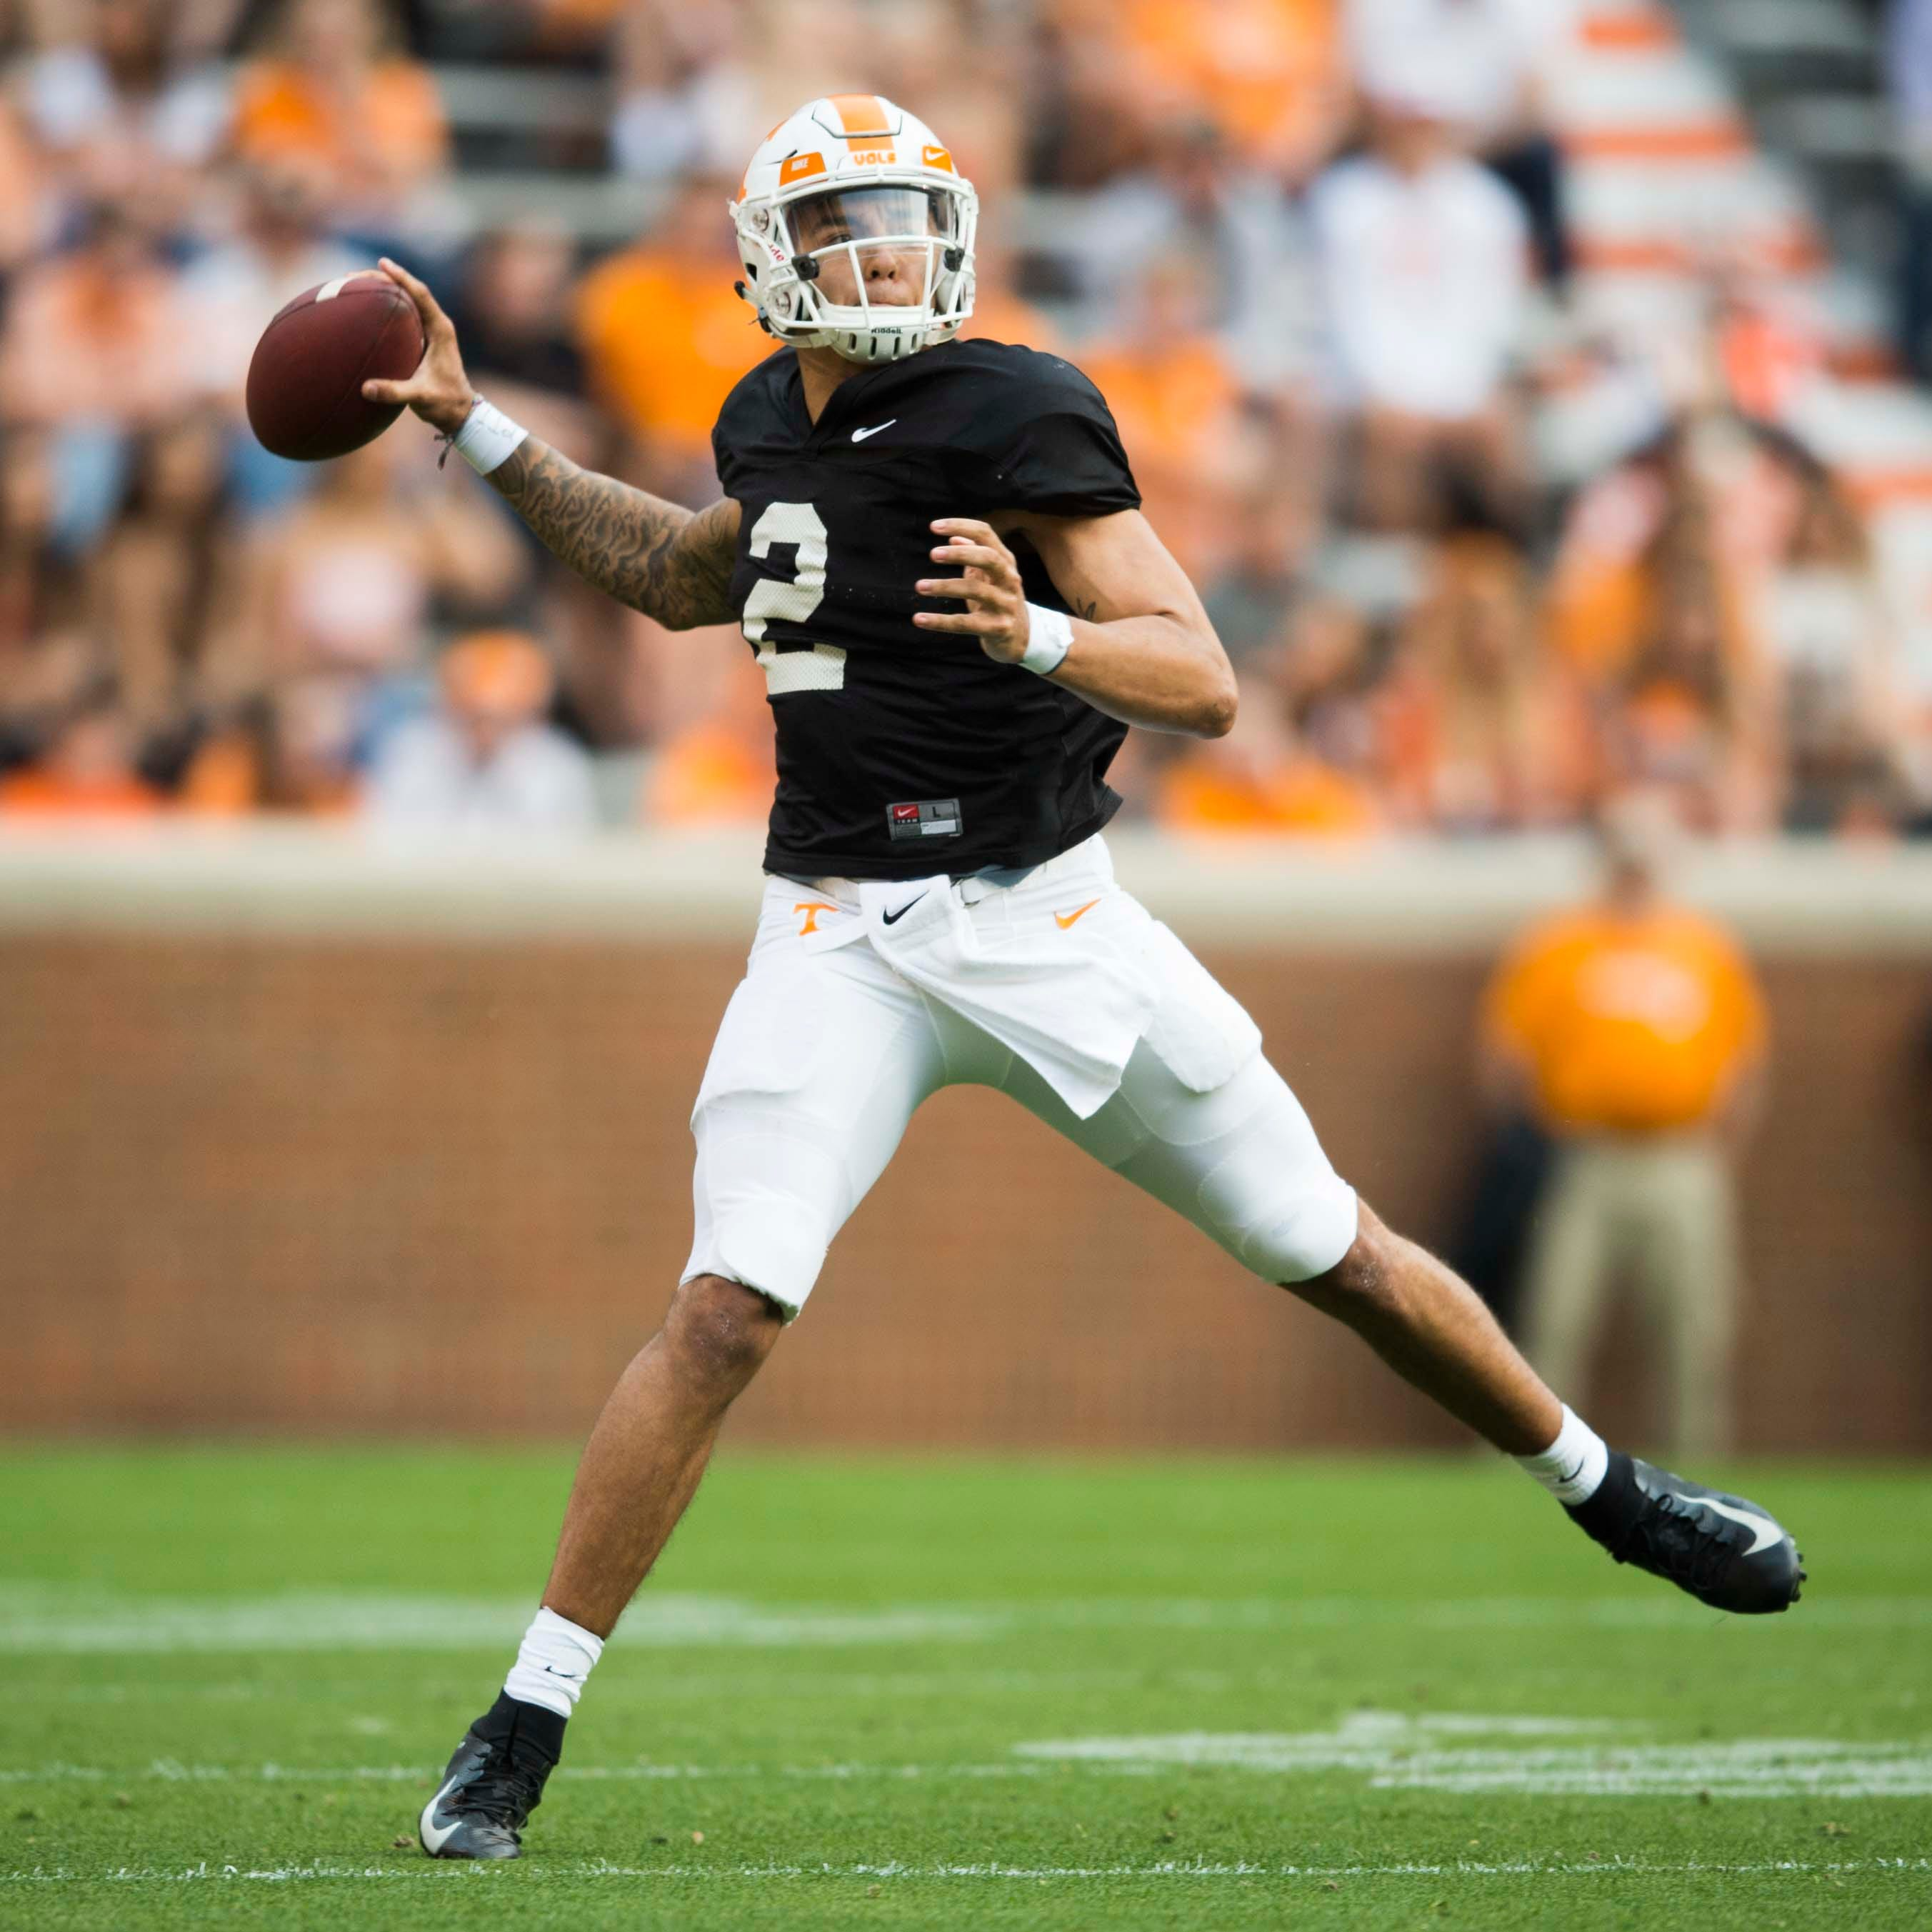 Tennessee's Jarrett Guarantano could move up in SEC East QB rankings